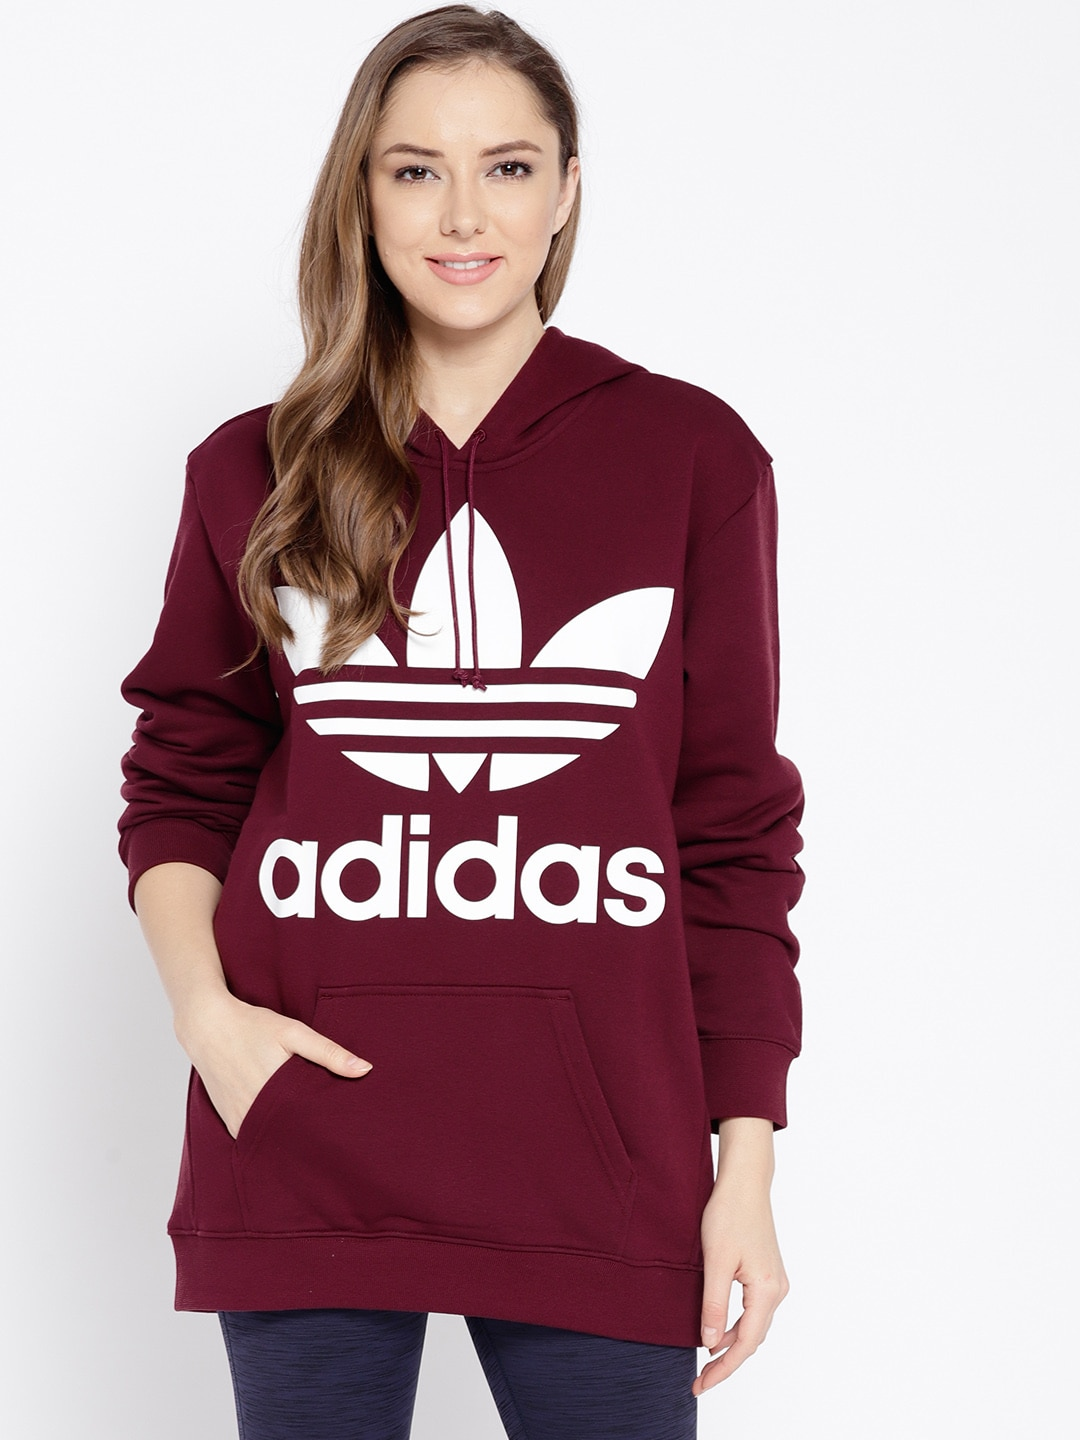 930033fb63ca Adidas Women Sweatshirts - Buy Adidas Women Sweatshirts online in India